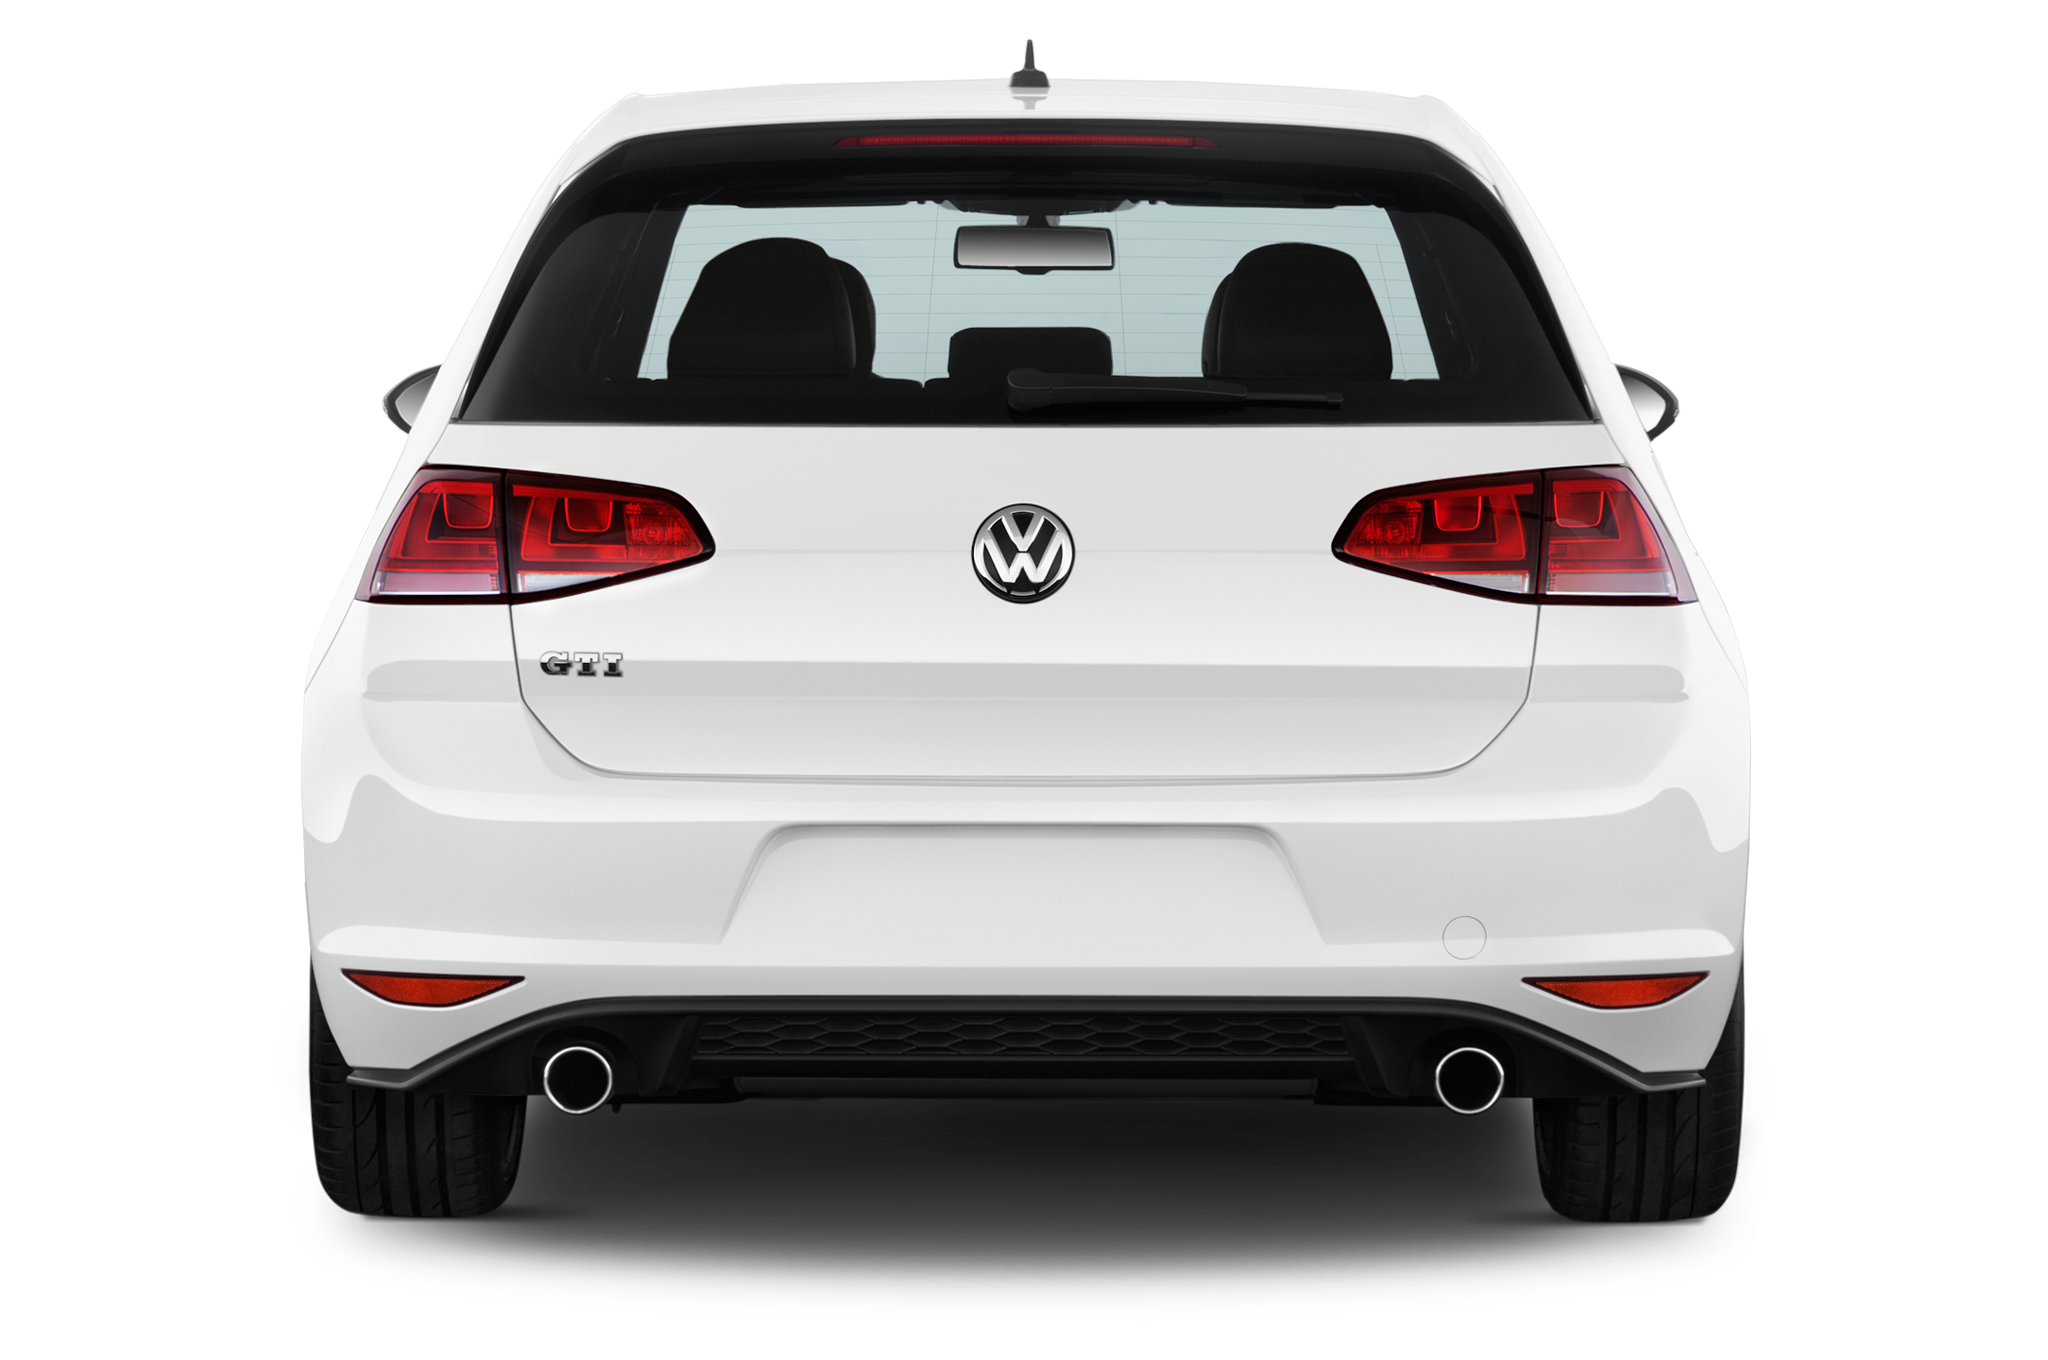 gti reviews and. Volkswagen drawing golf vw vector freeuse